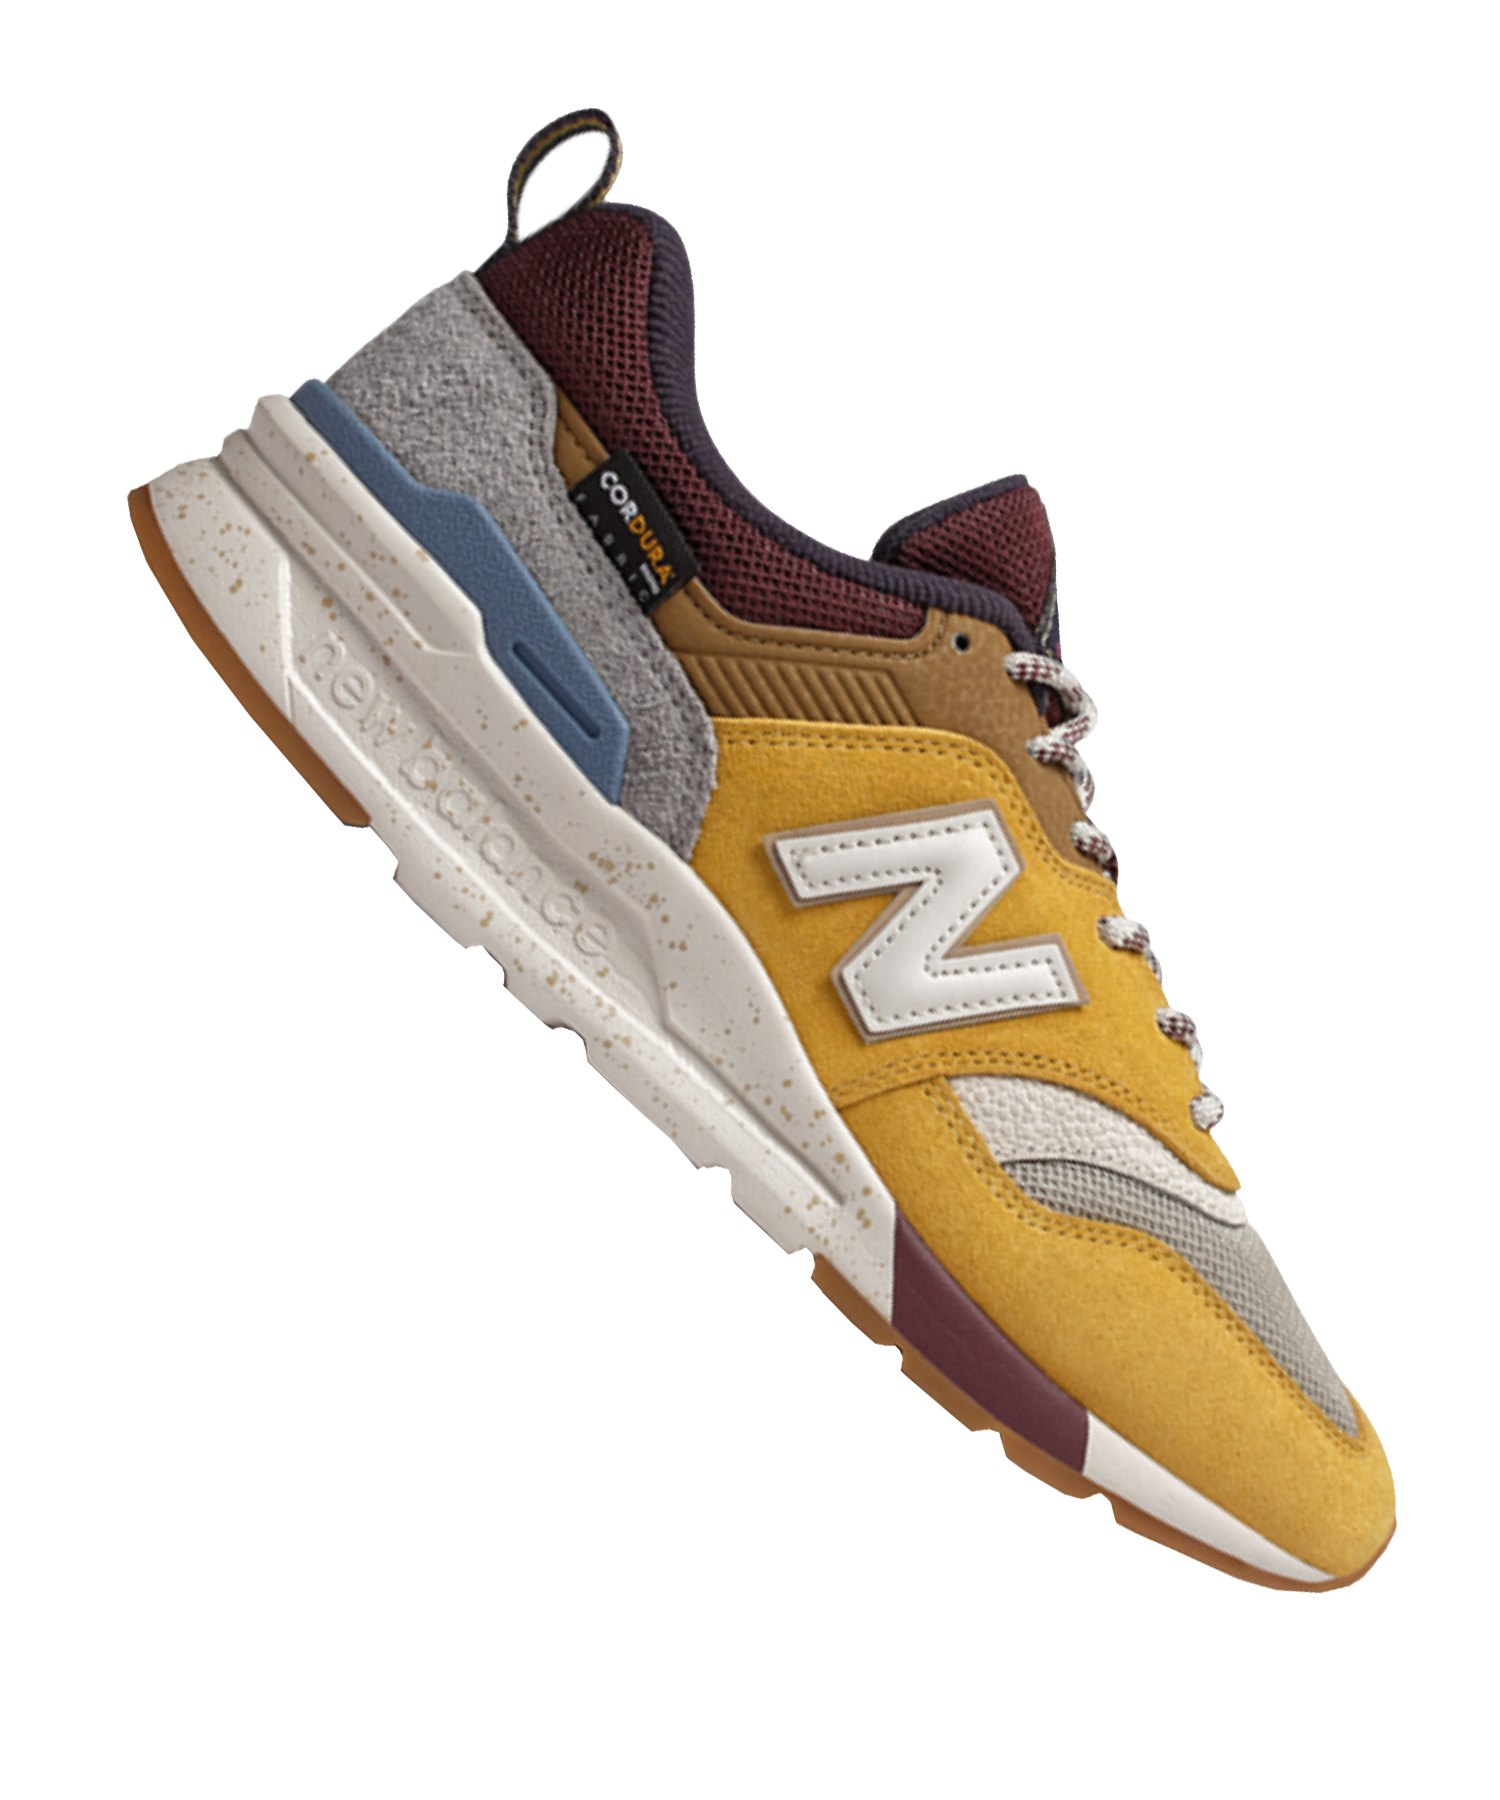 Buy > new balance sneakers damen Limit discounts 62% OFF